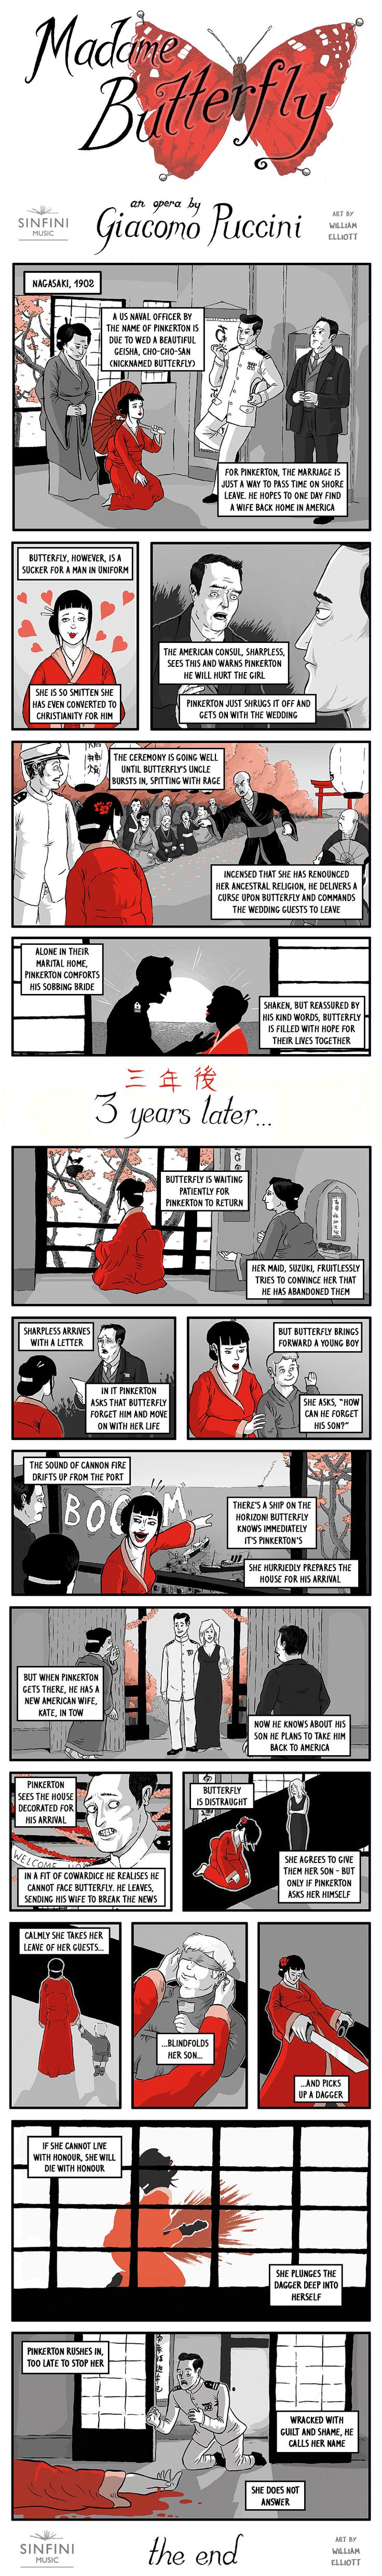 ... Graphic artist William Elliott: Sinfini's Opera Strip Madama Butterfly